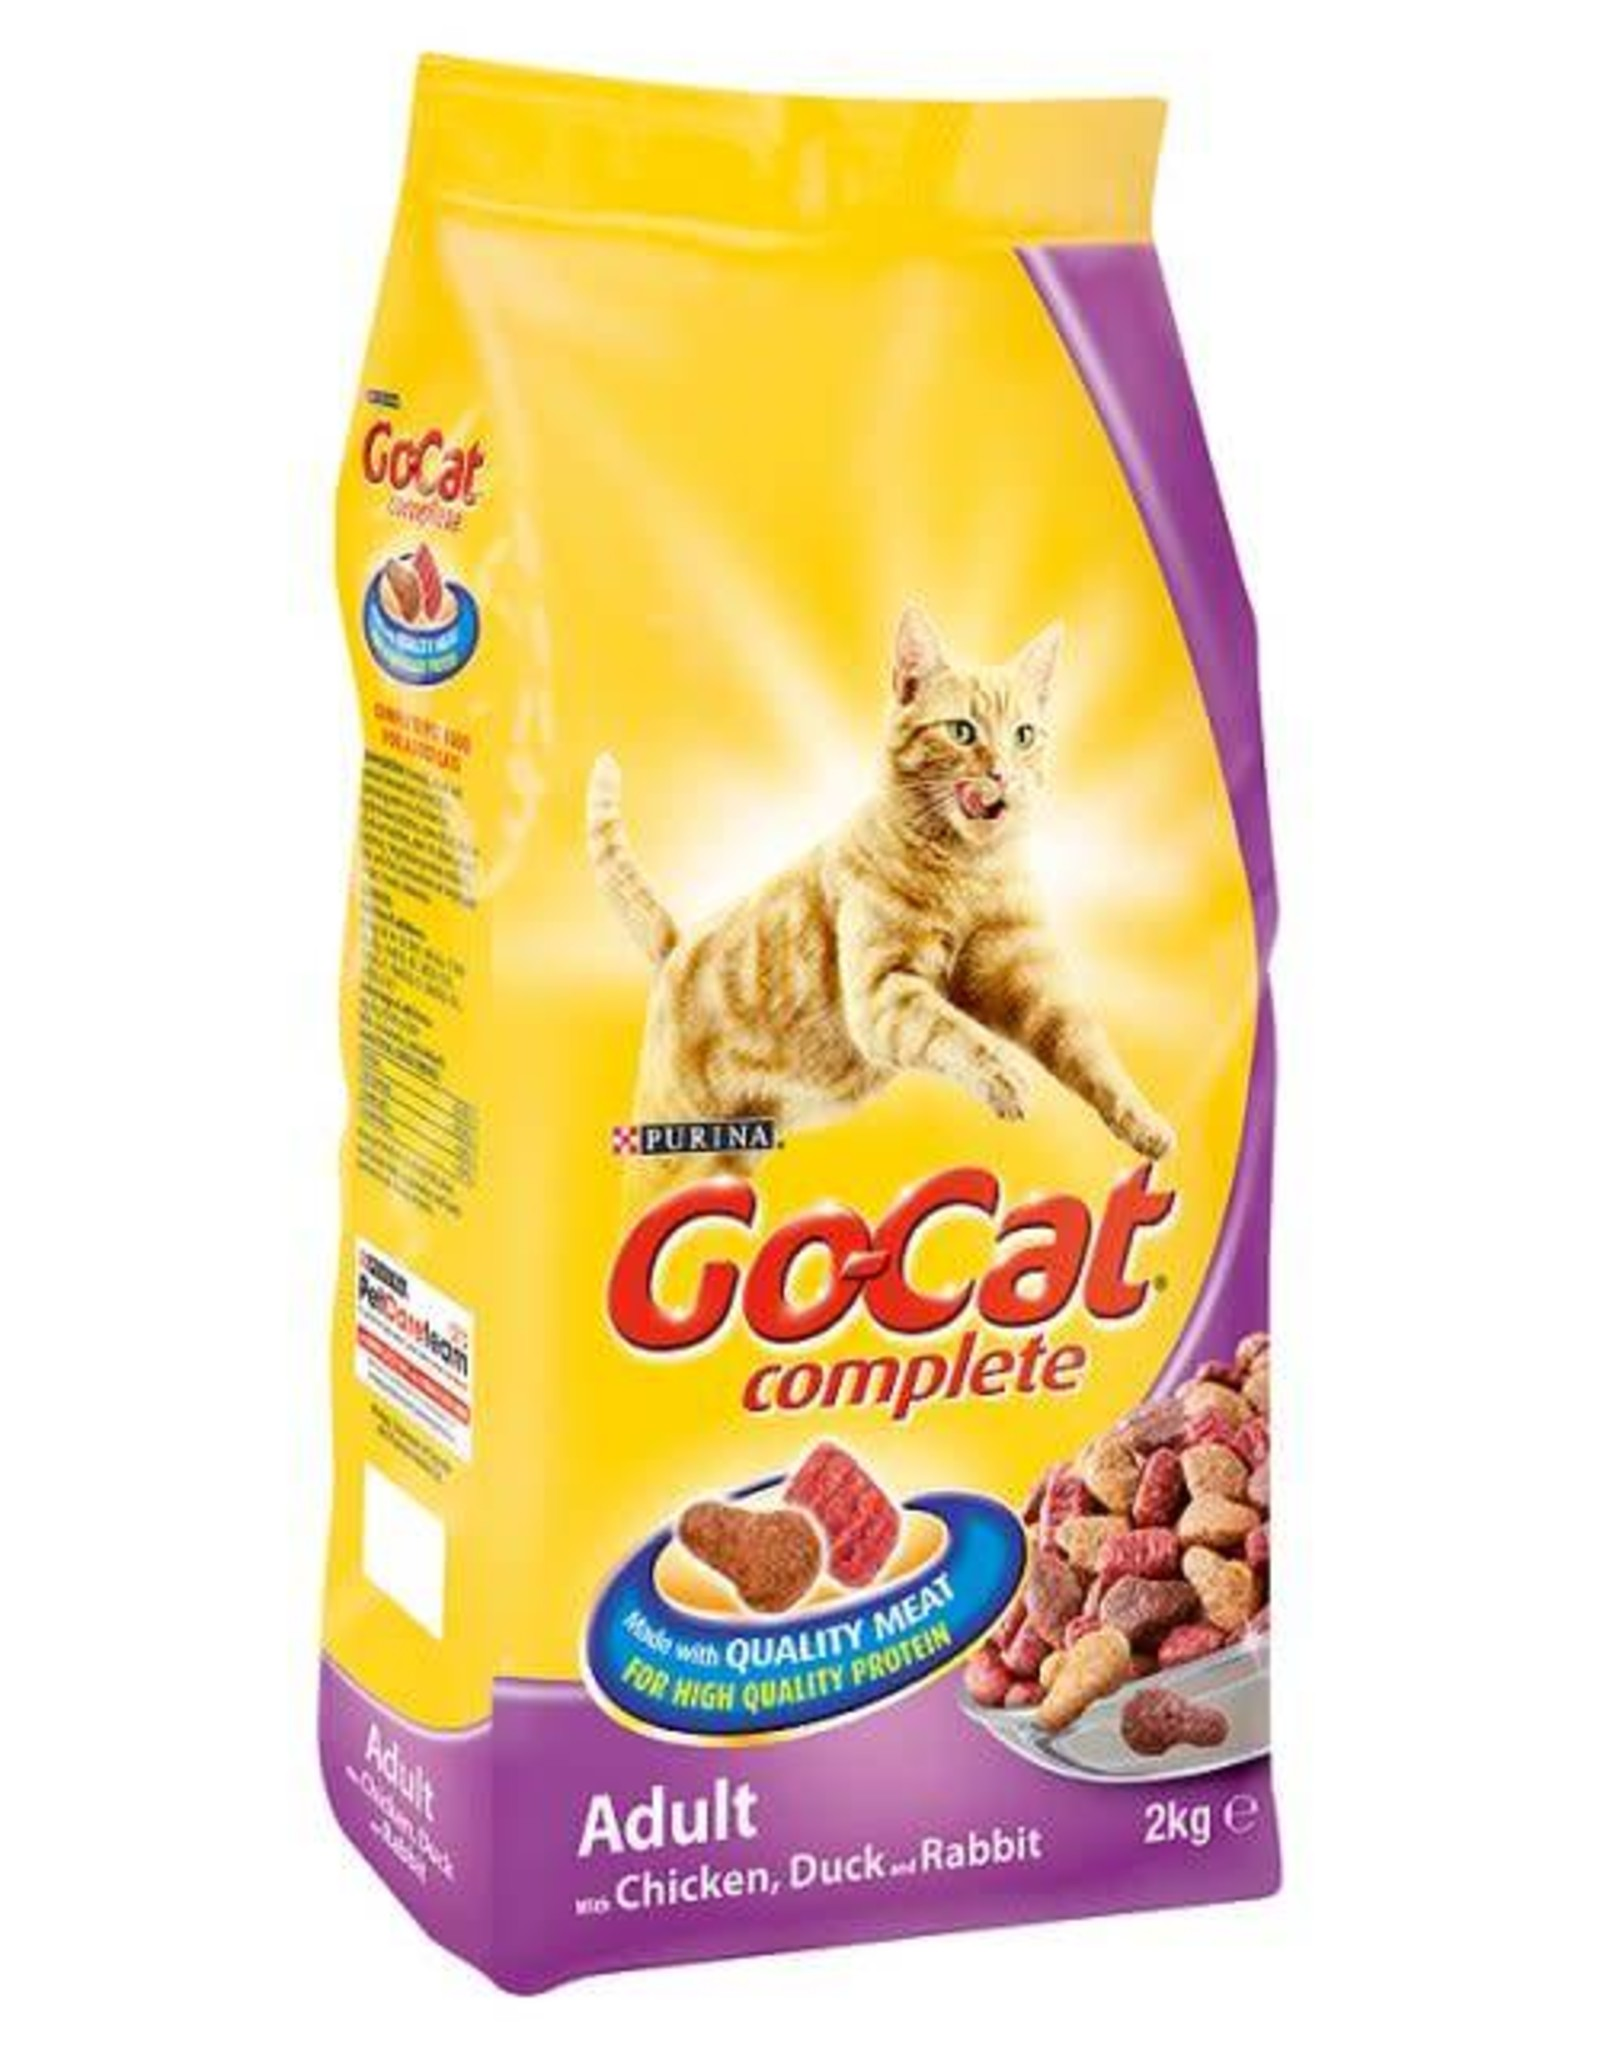 Go-Cat Complete Adult Cat Dry Food, Chicken & Duck